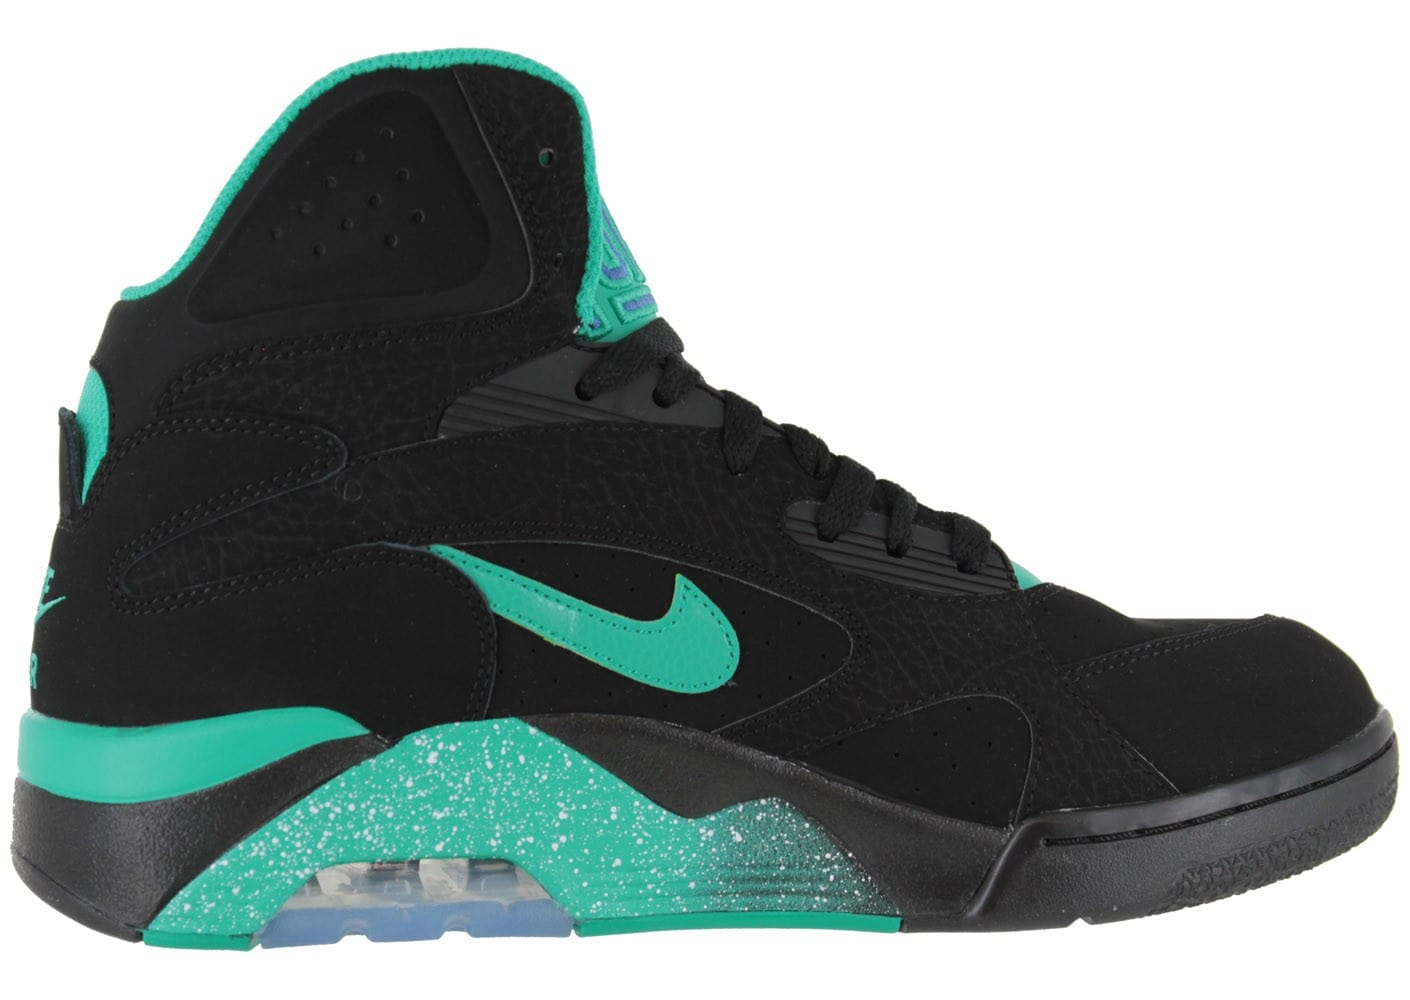 Air 180 Mid Nike Baskets Chausport Force Noire Chaussures Homme wvNm8n0